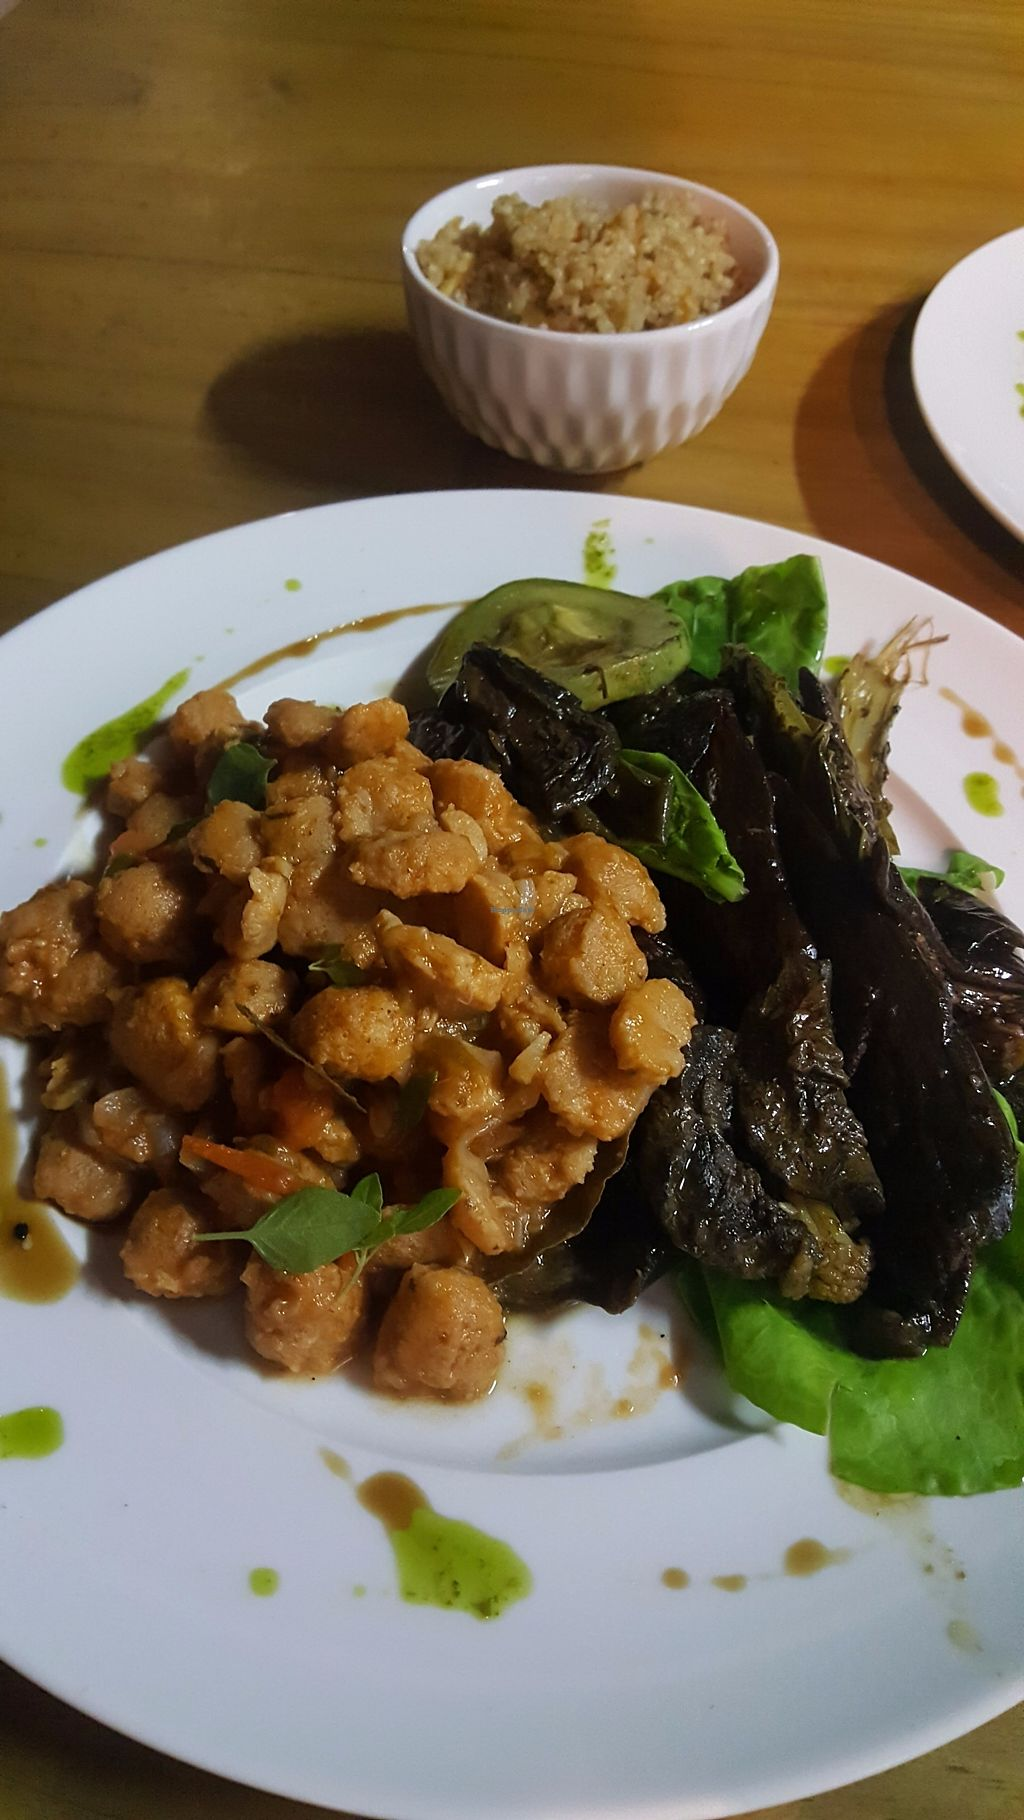 """Photo of Bio Comida Saudavel  by <a href=""""/members/profile/sarahssoares"""">sarahssoares</a> <br/>Soy meat with eggplant <br/> September 19, 2017  - <a href='/contact/abuse/image/101045/306041'>Report</a>"""